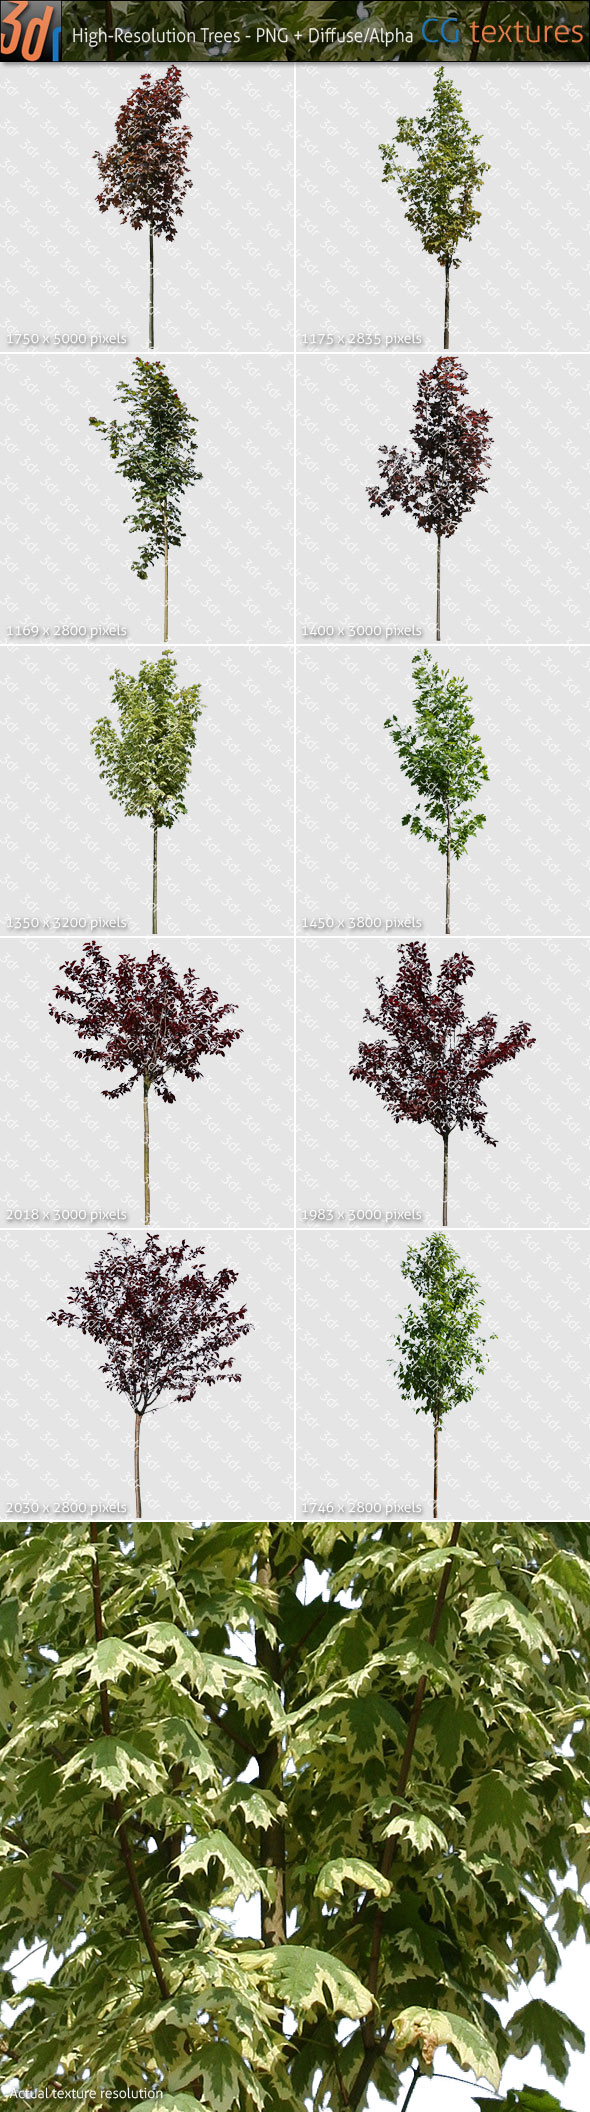 Trees Textures Hi-Res Collection 01 - 3DOcean Item for Sale